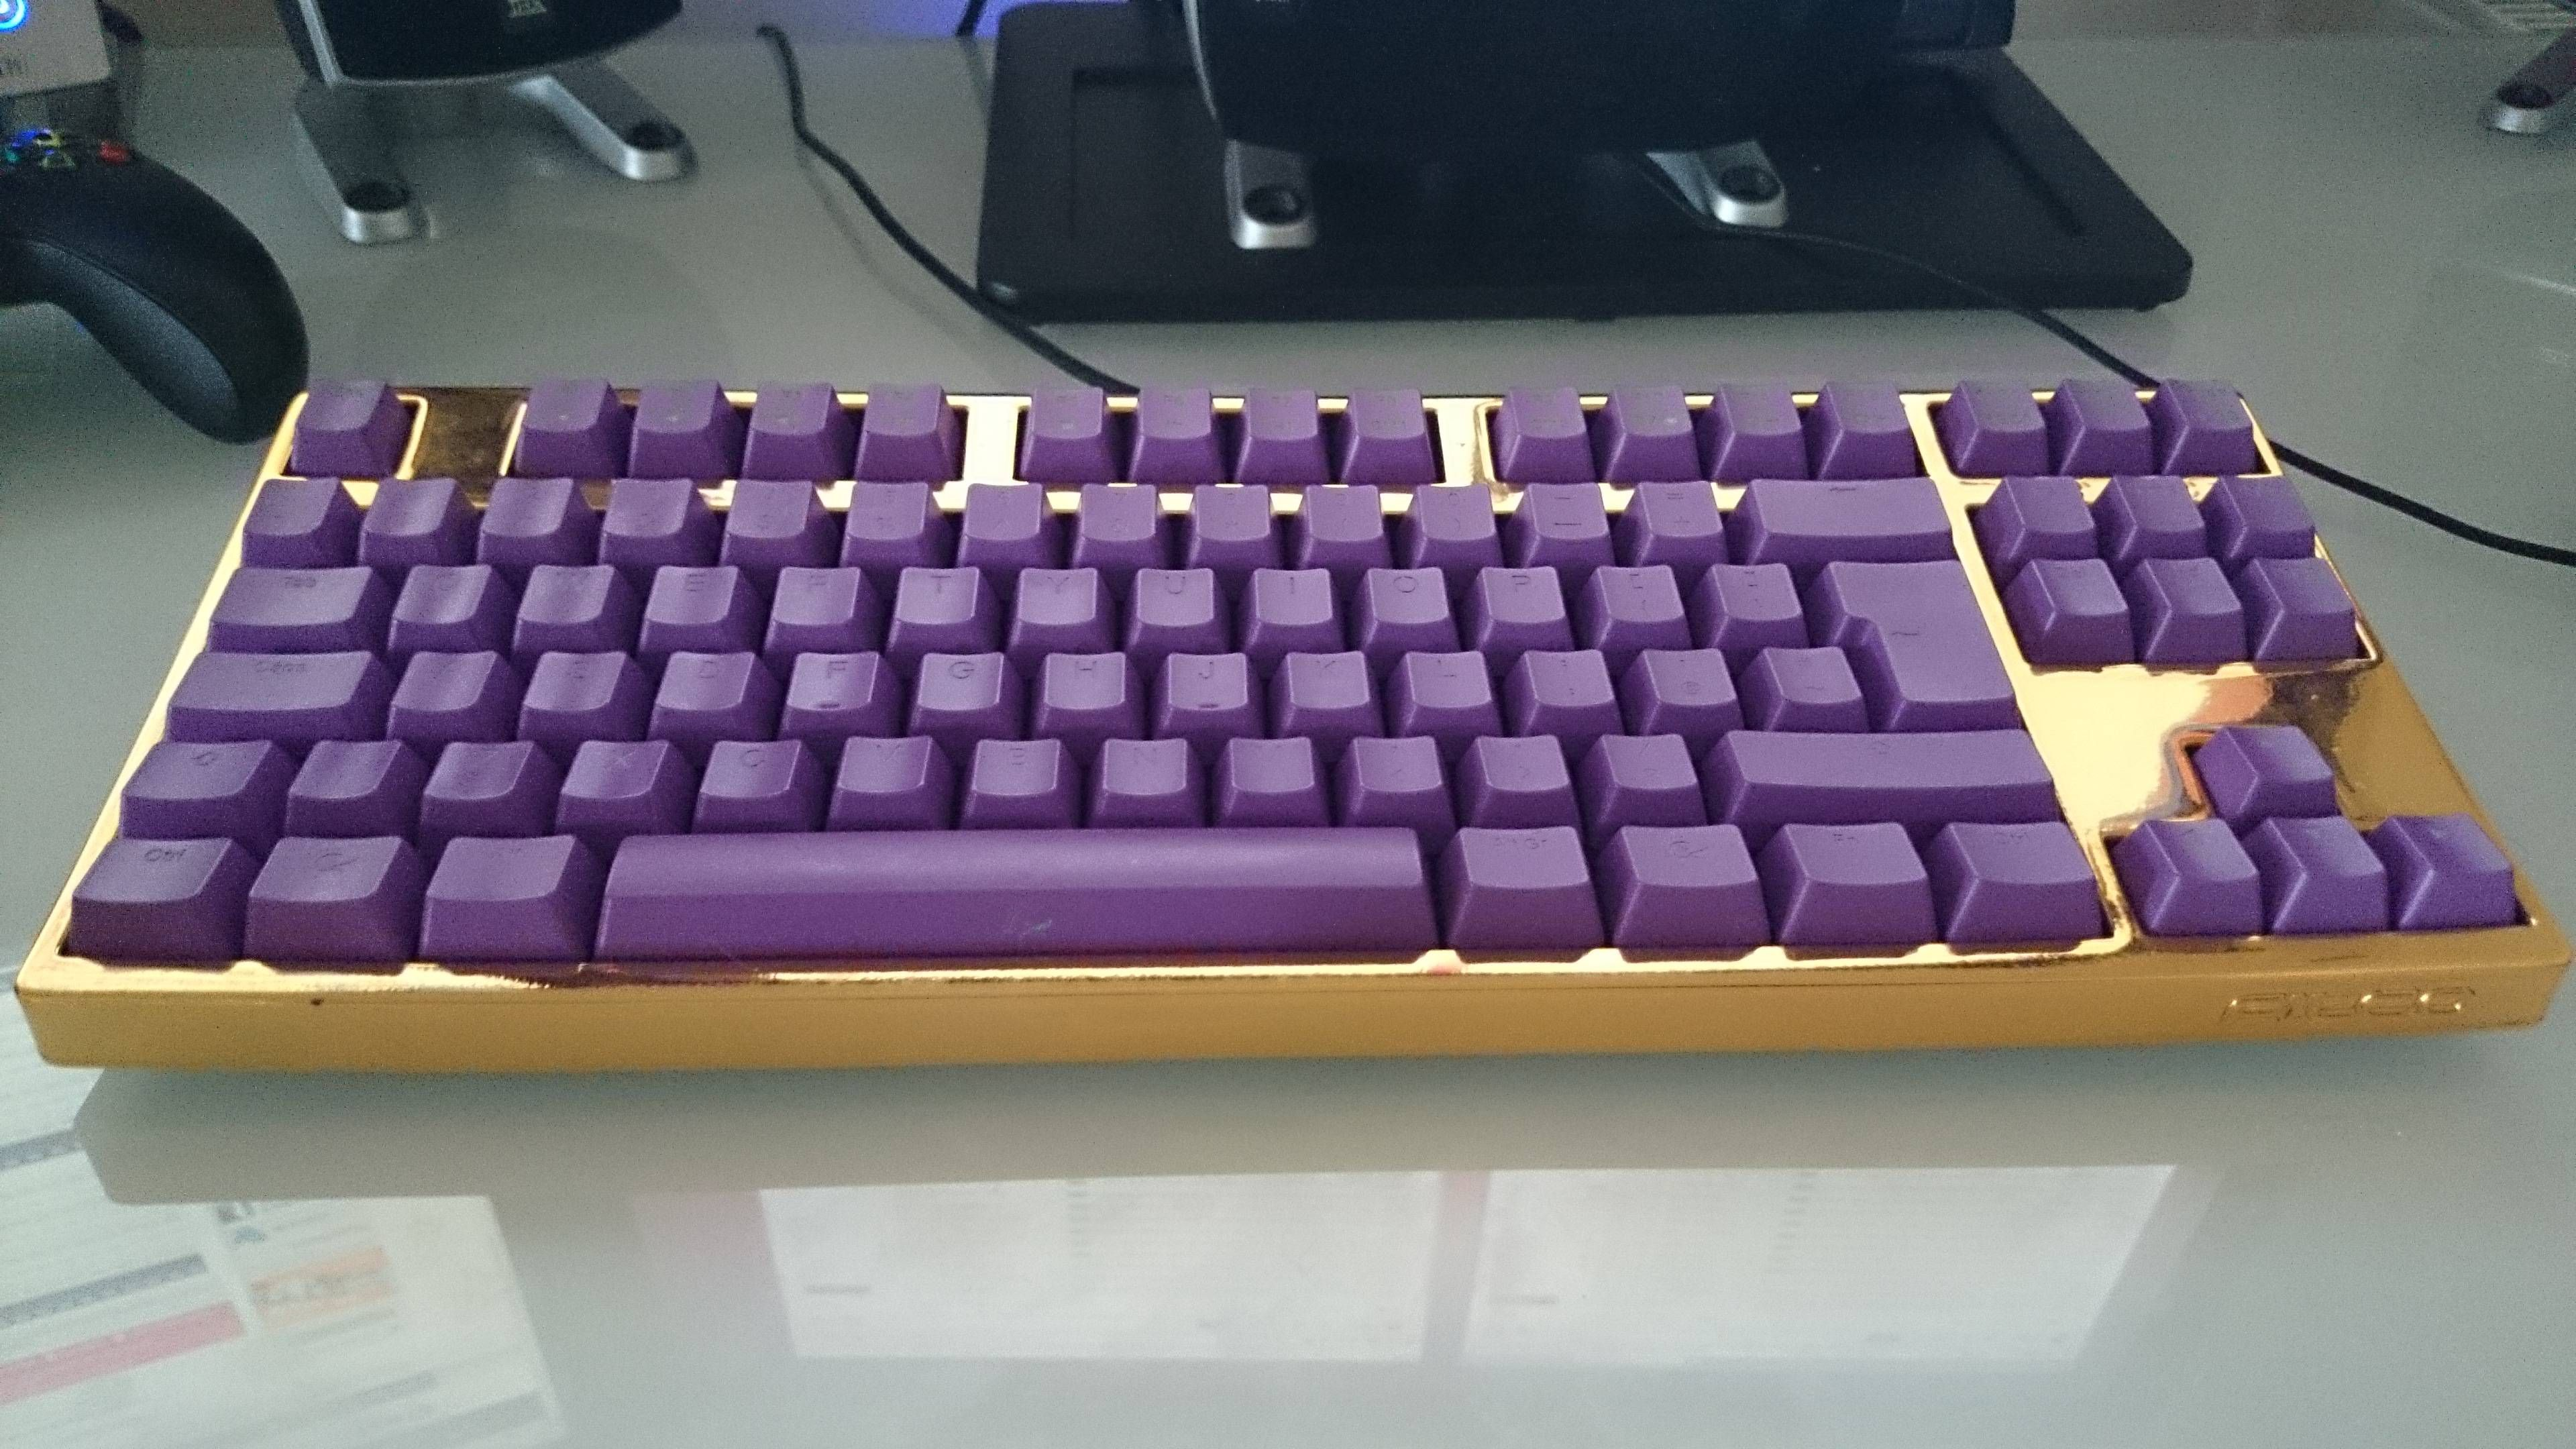 My ostentatious golden Filco with purple Ducky keycaps